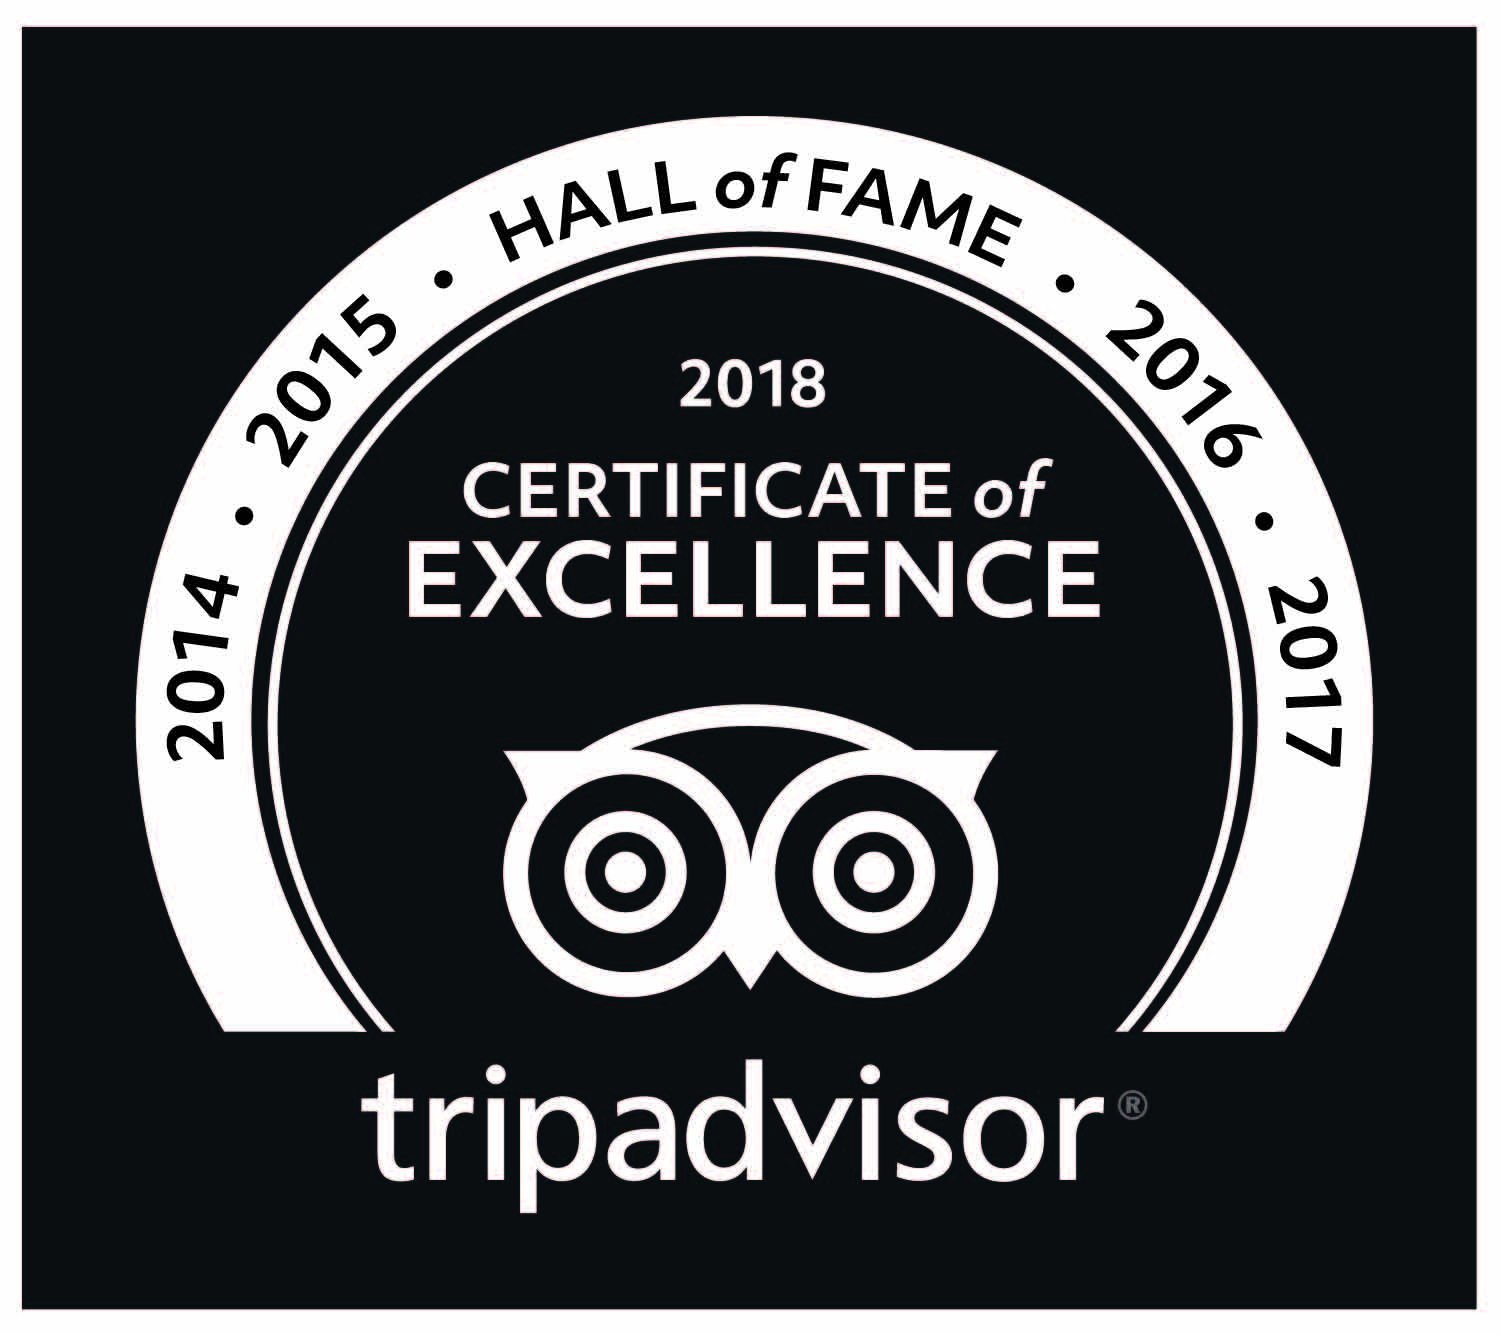 imageTripadvisor hall of fame badge